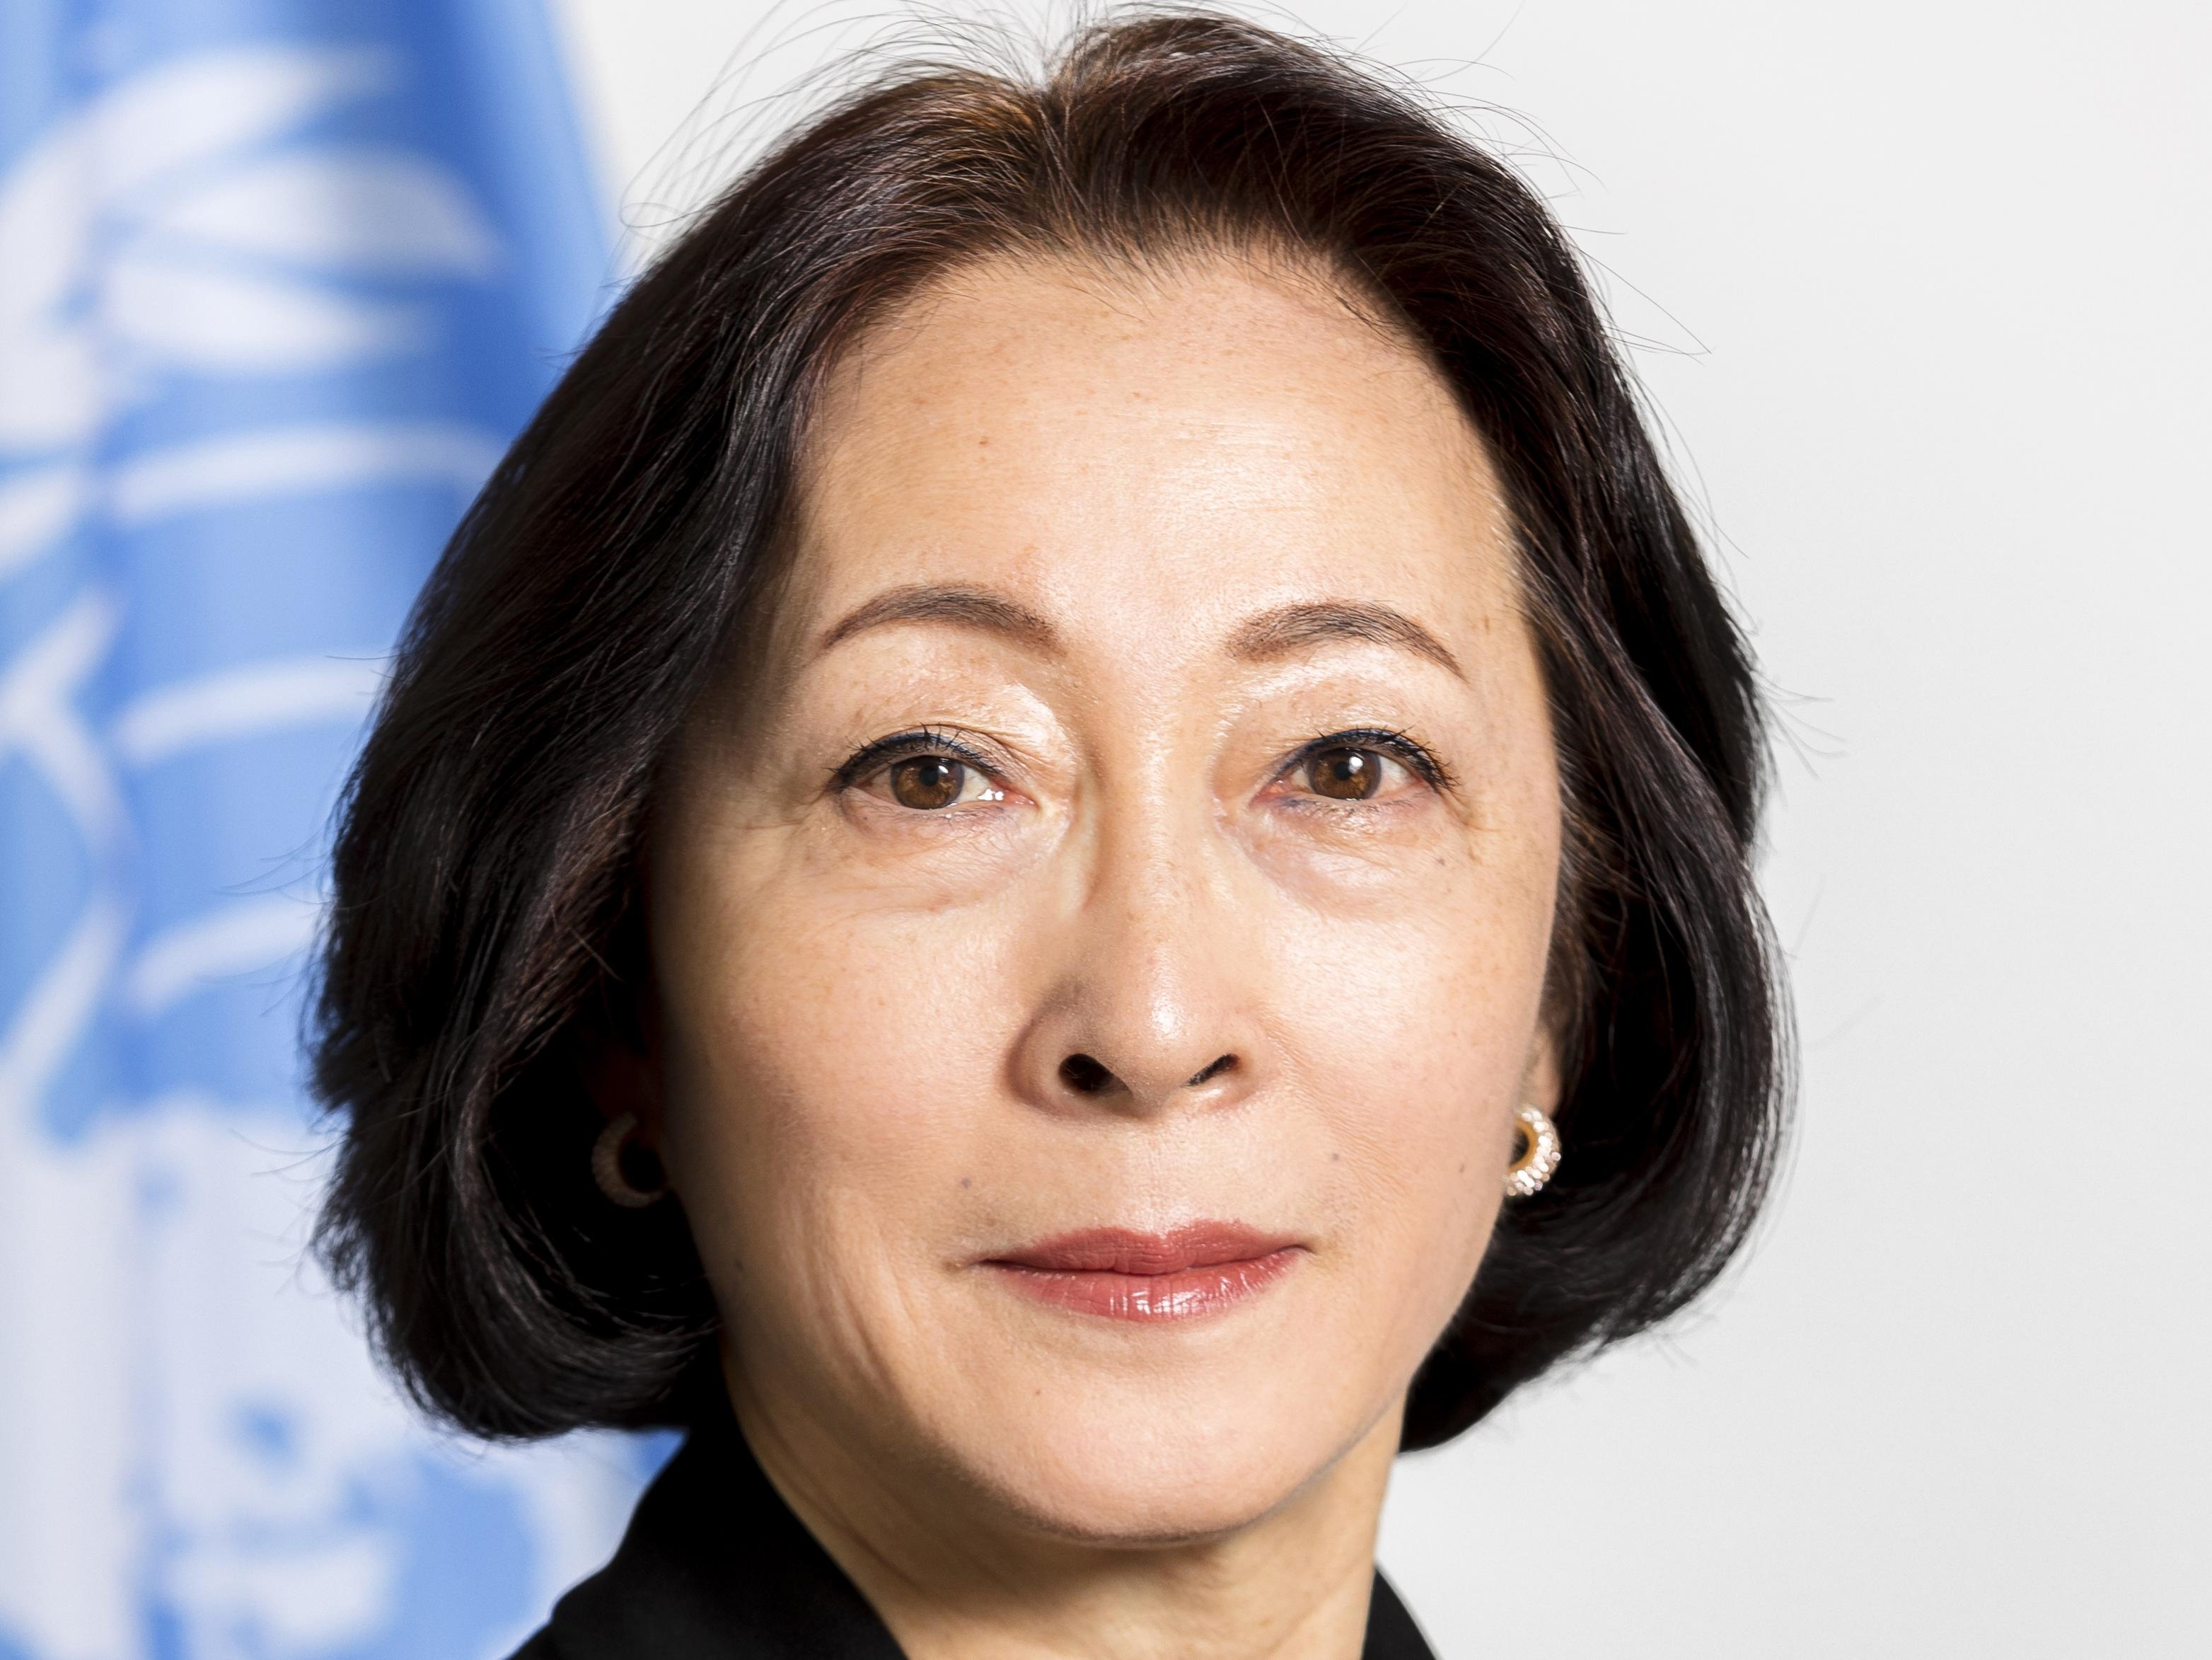 Mami Mizutori, UN Secretary-General's Special Representative for Disaster Risk Reductiion